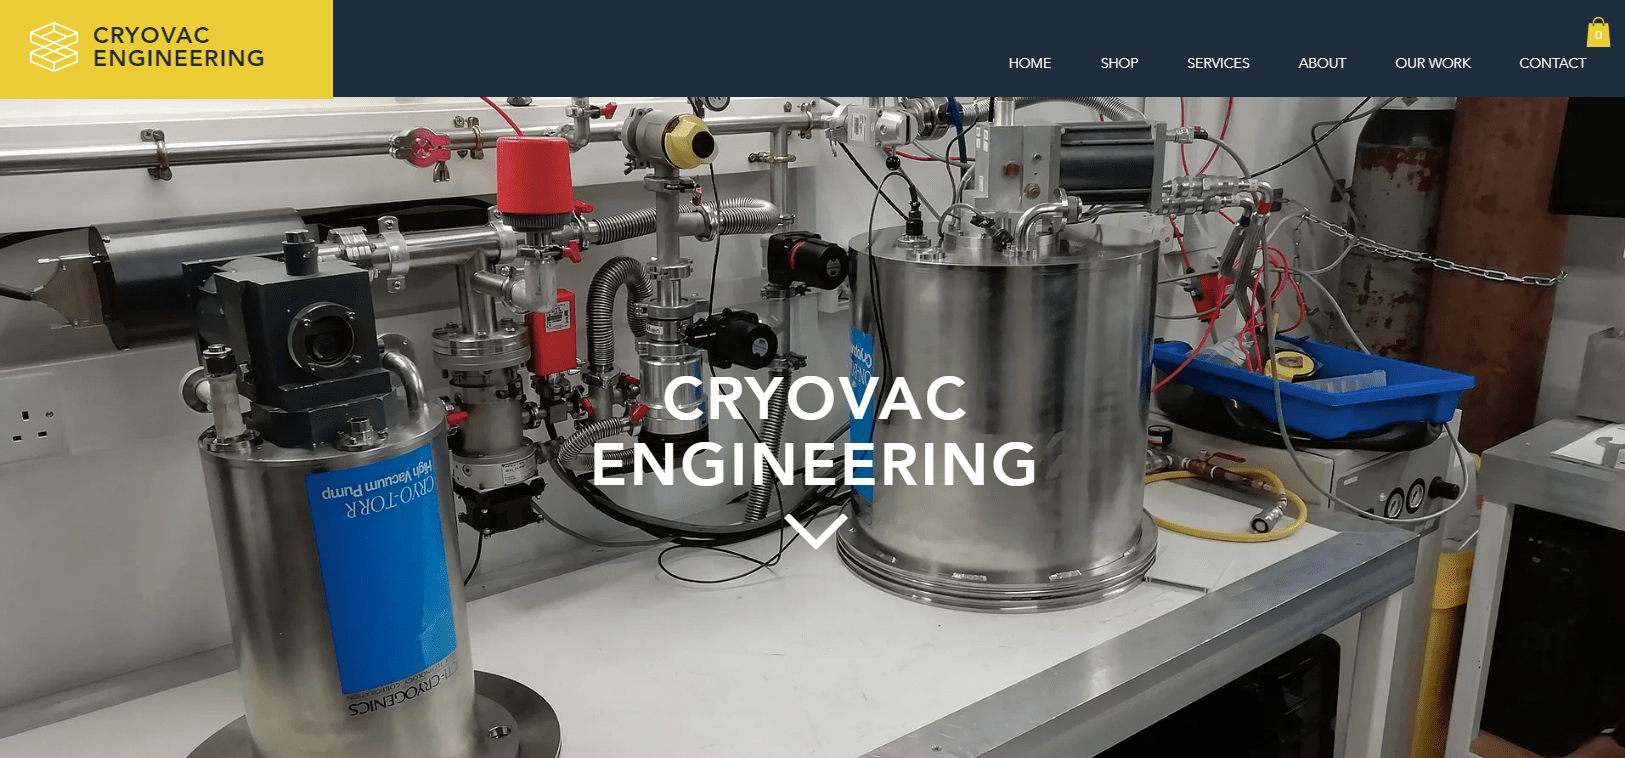 Cryovac Engineering